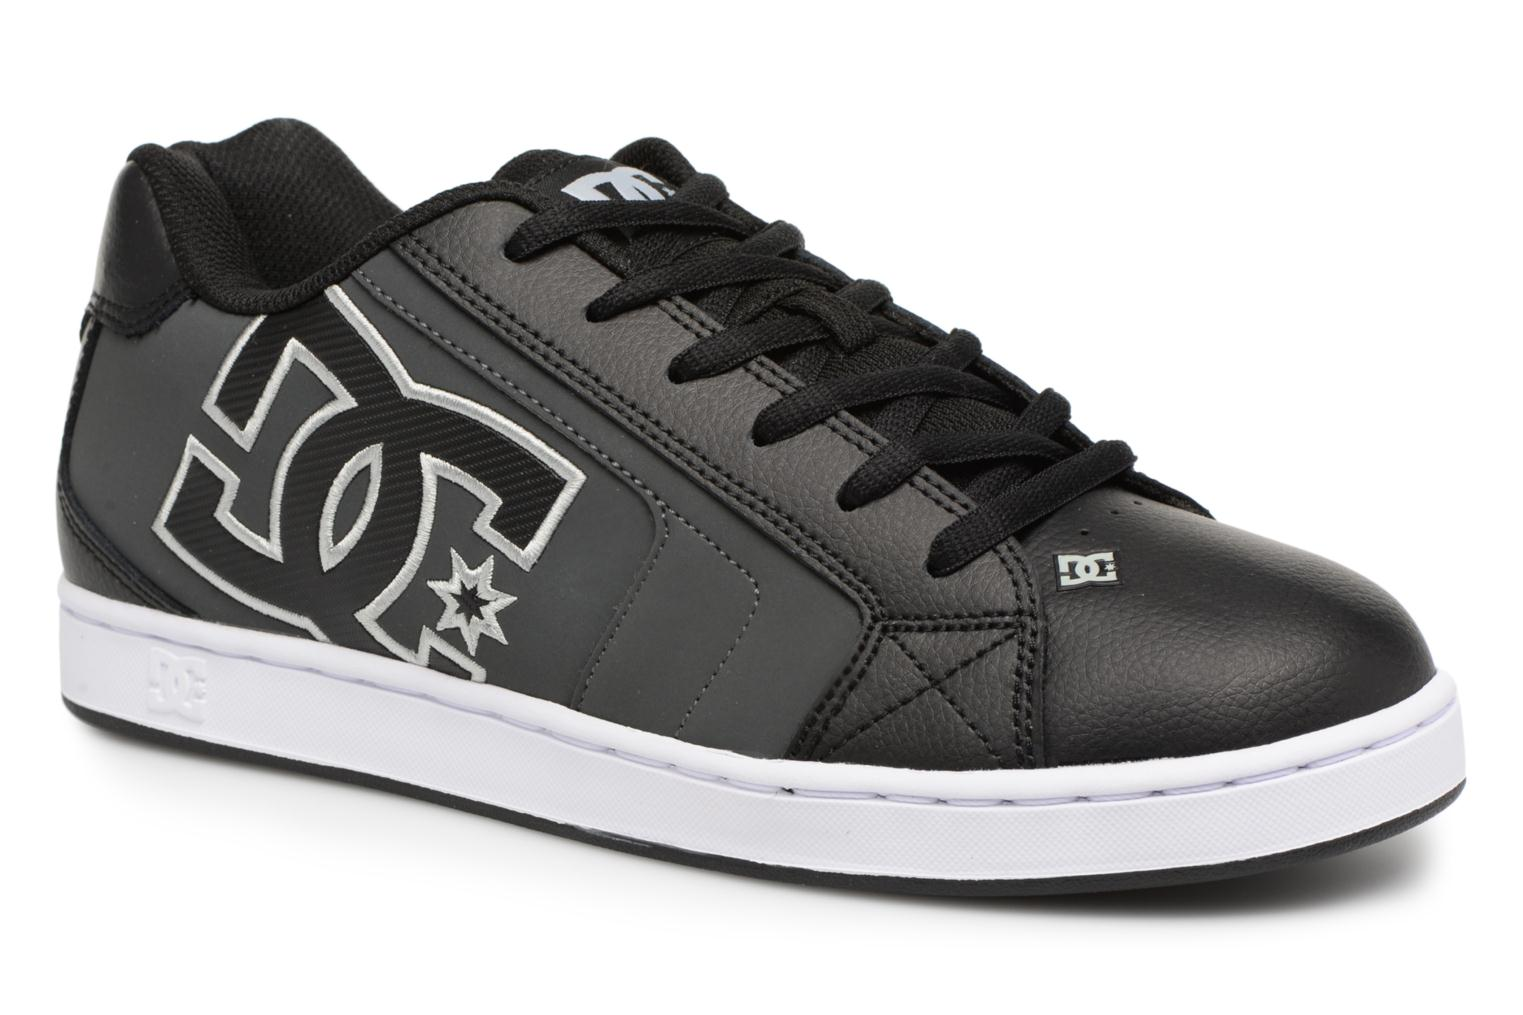 Net by DC Shoes